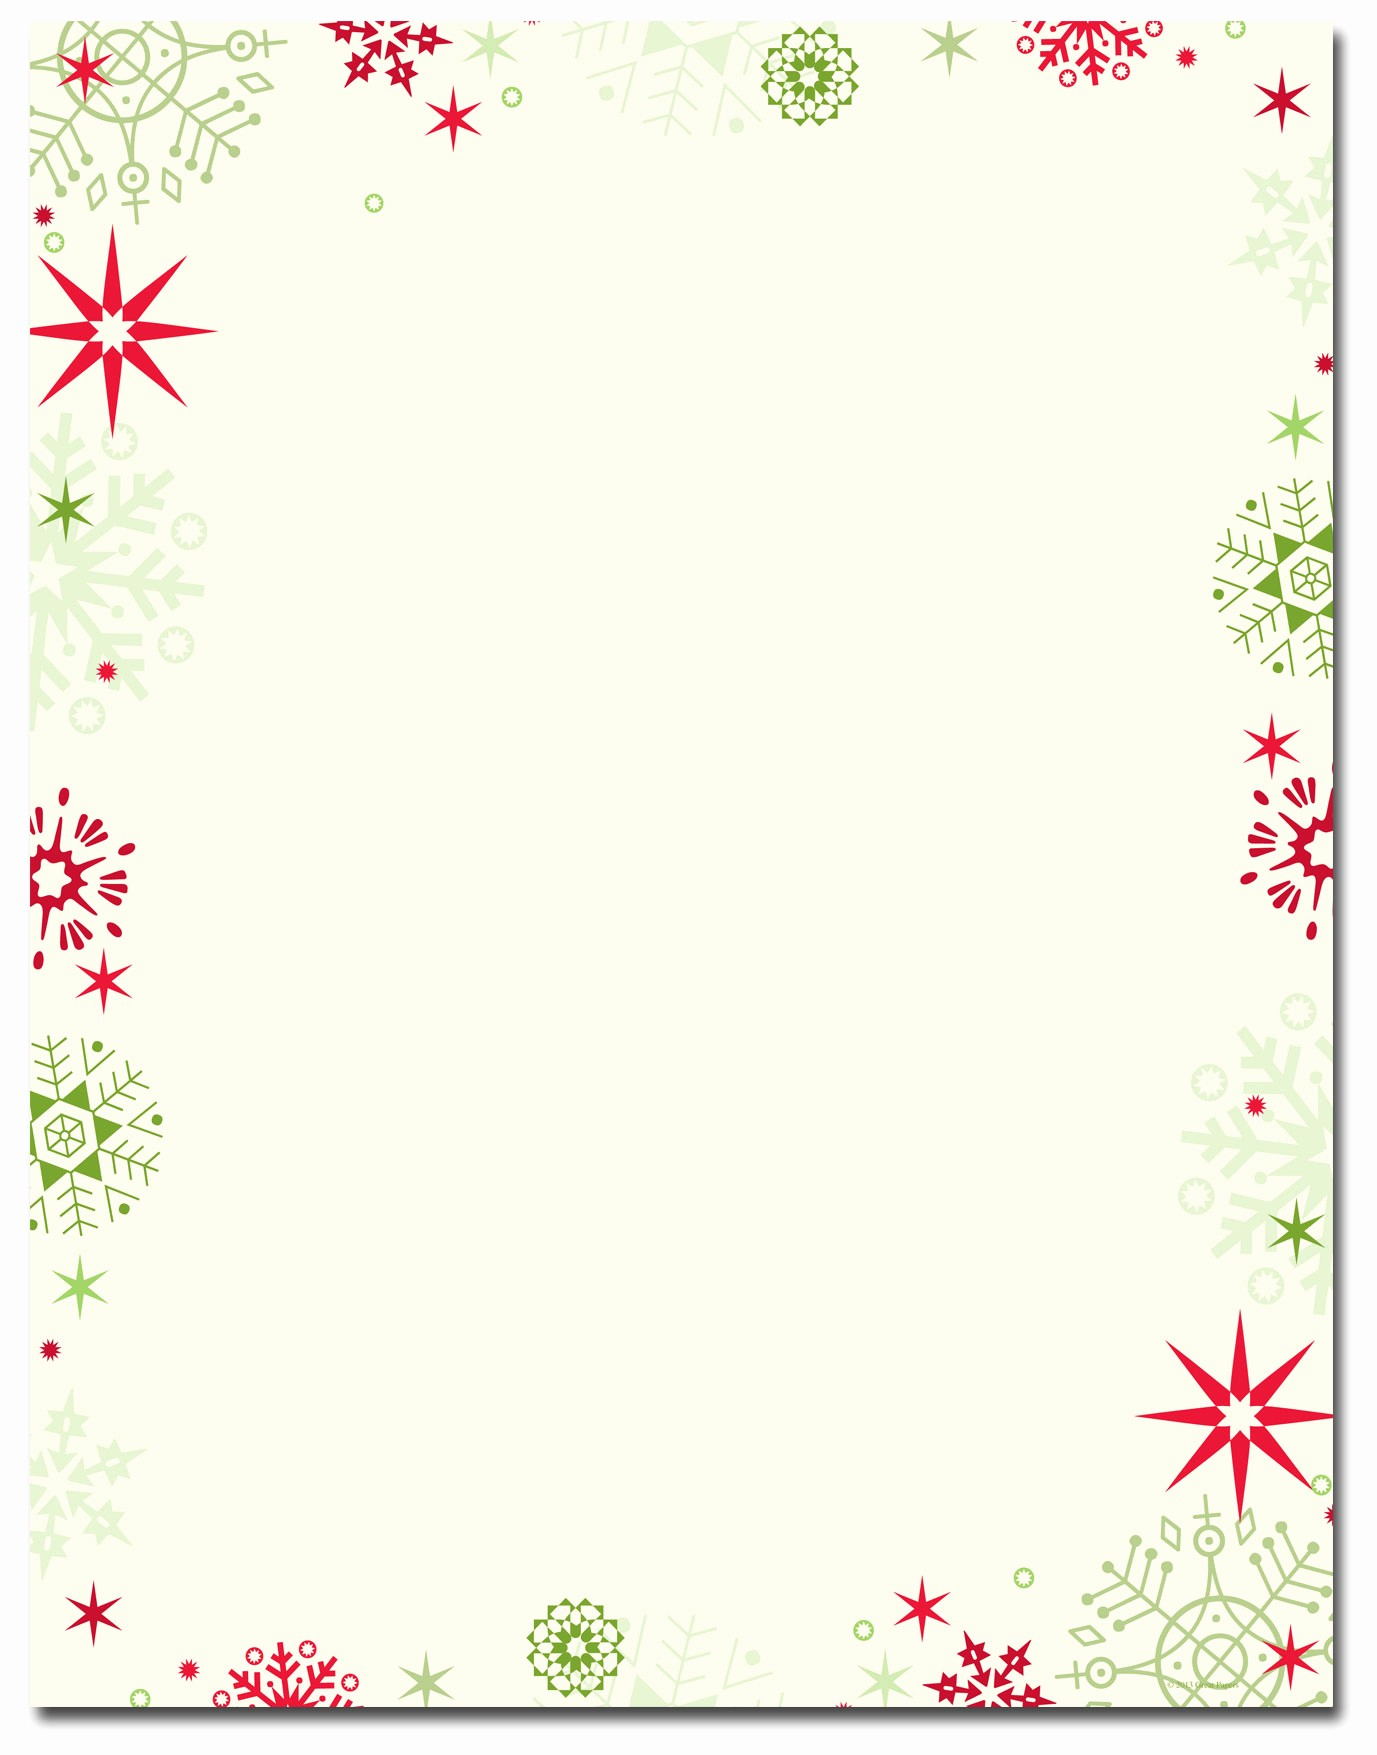 Free Christmas Stationery to Print New Free Printable Christmas Border Stationery – Fun for